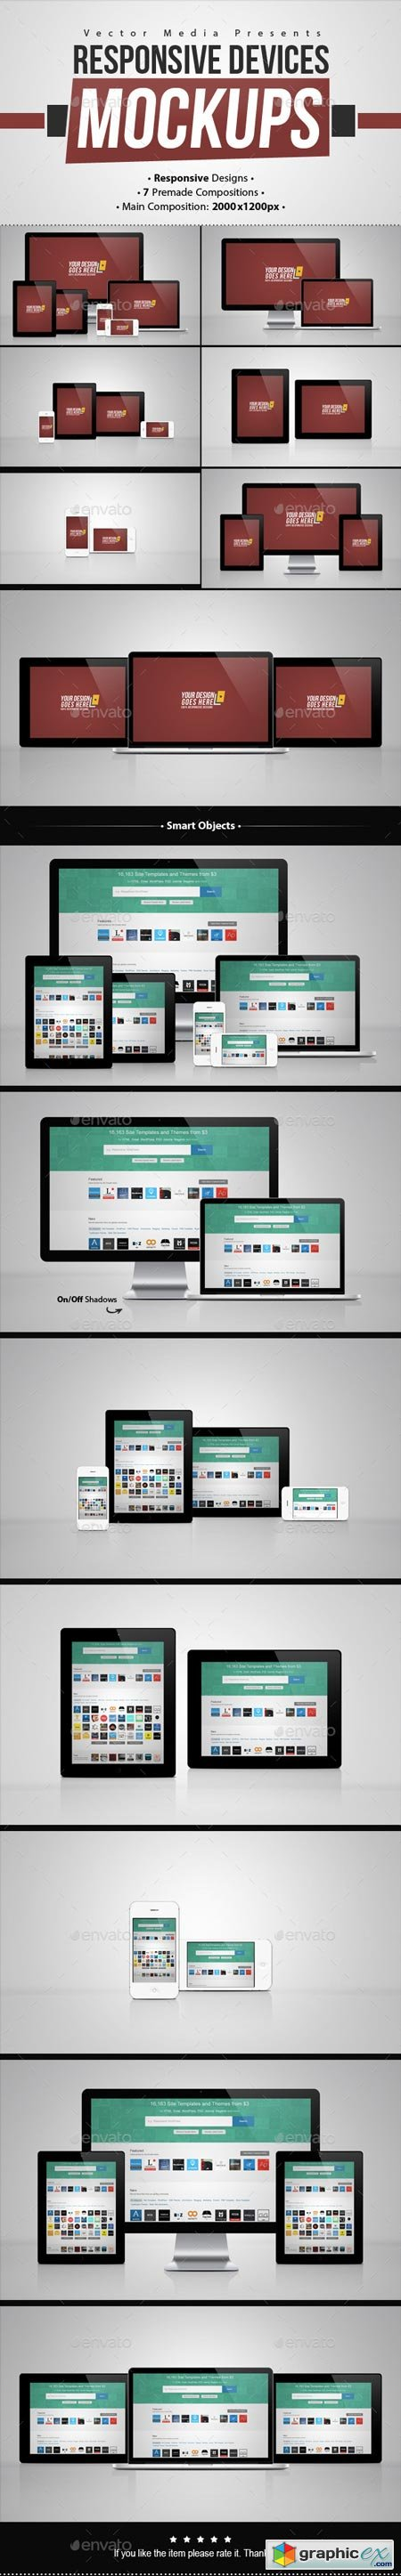 Responsive Devices - Mock-ups 8922730